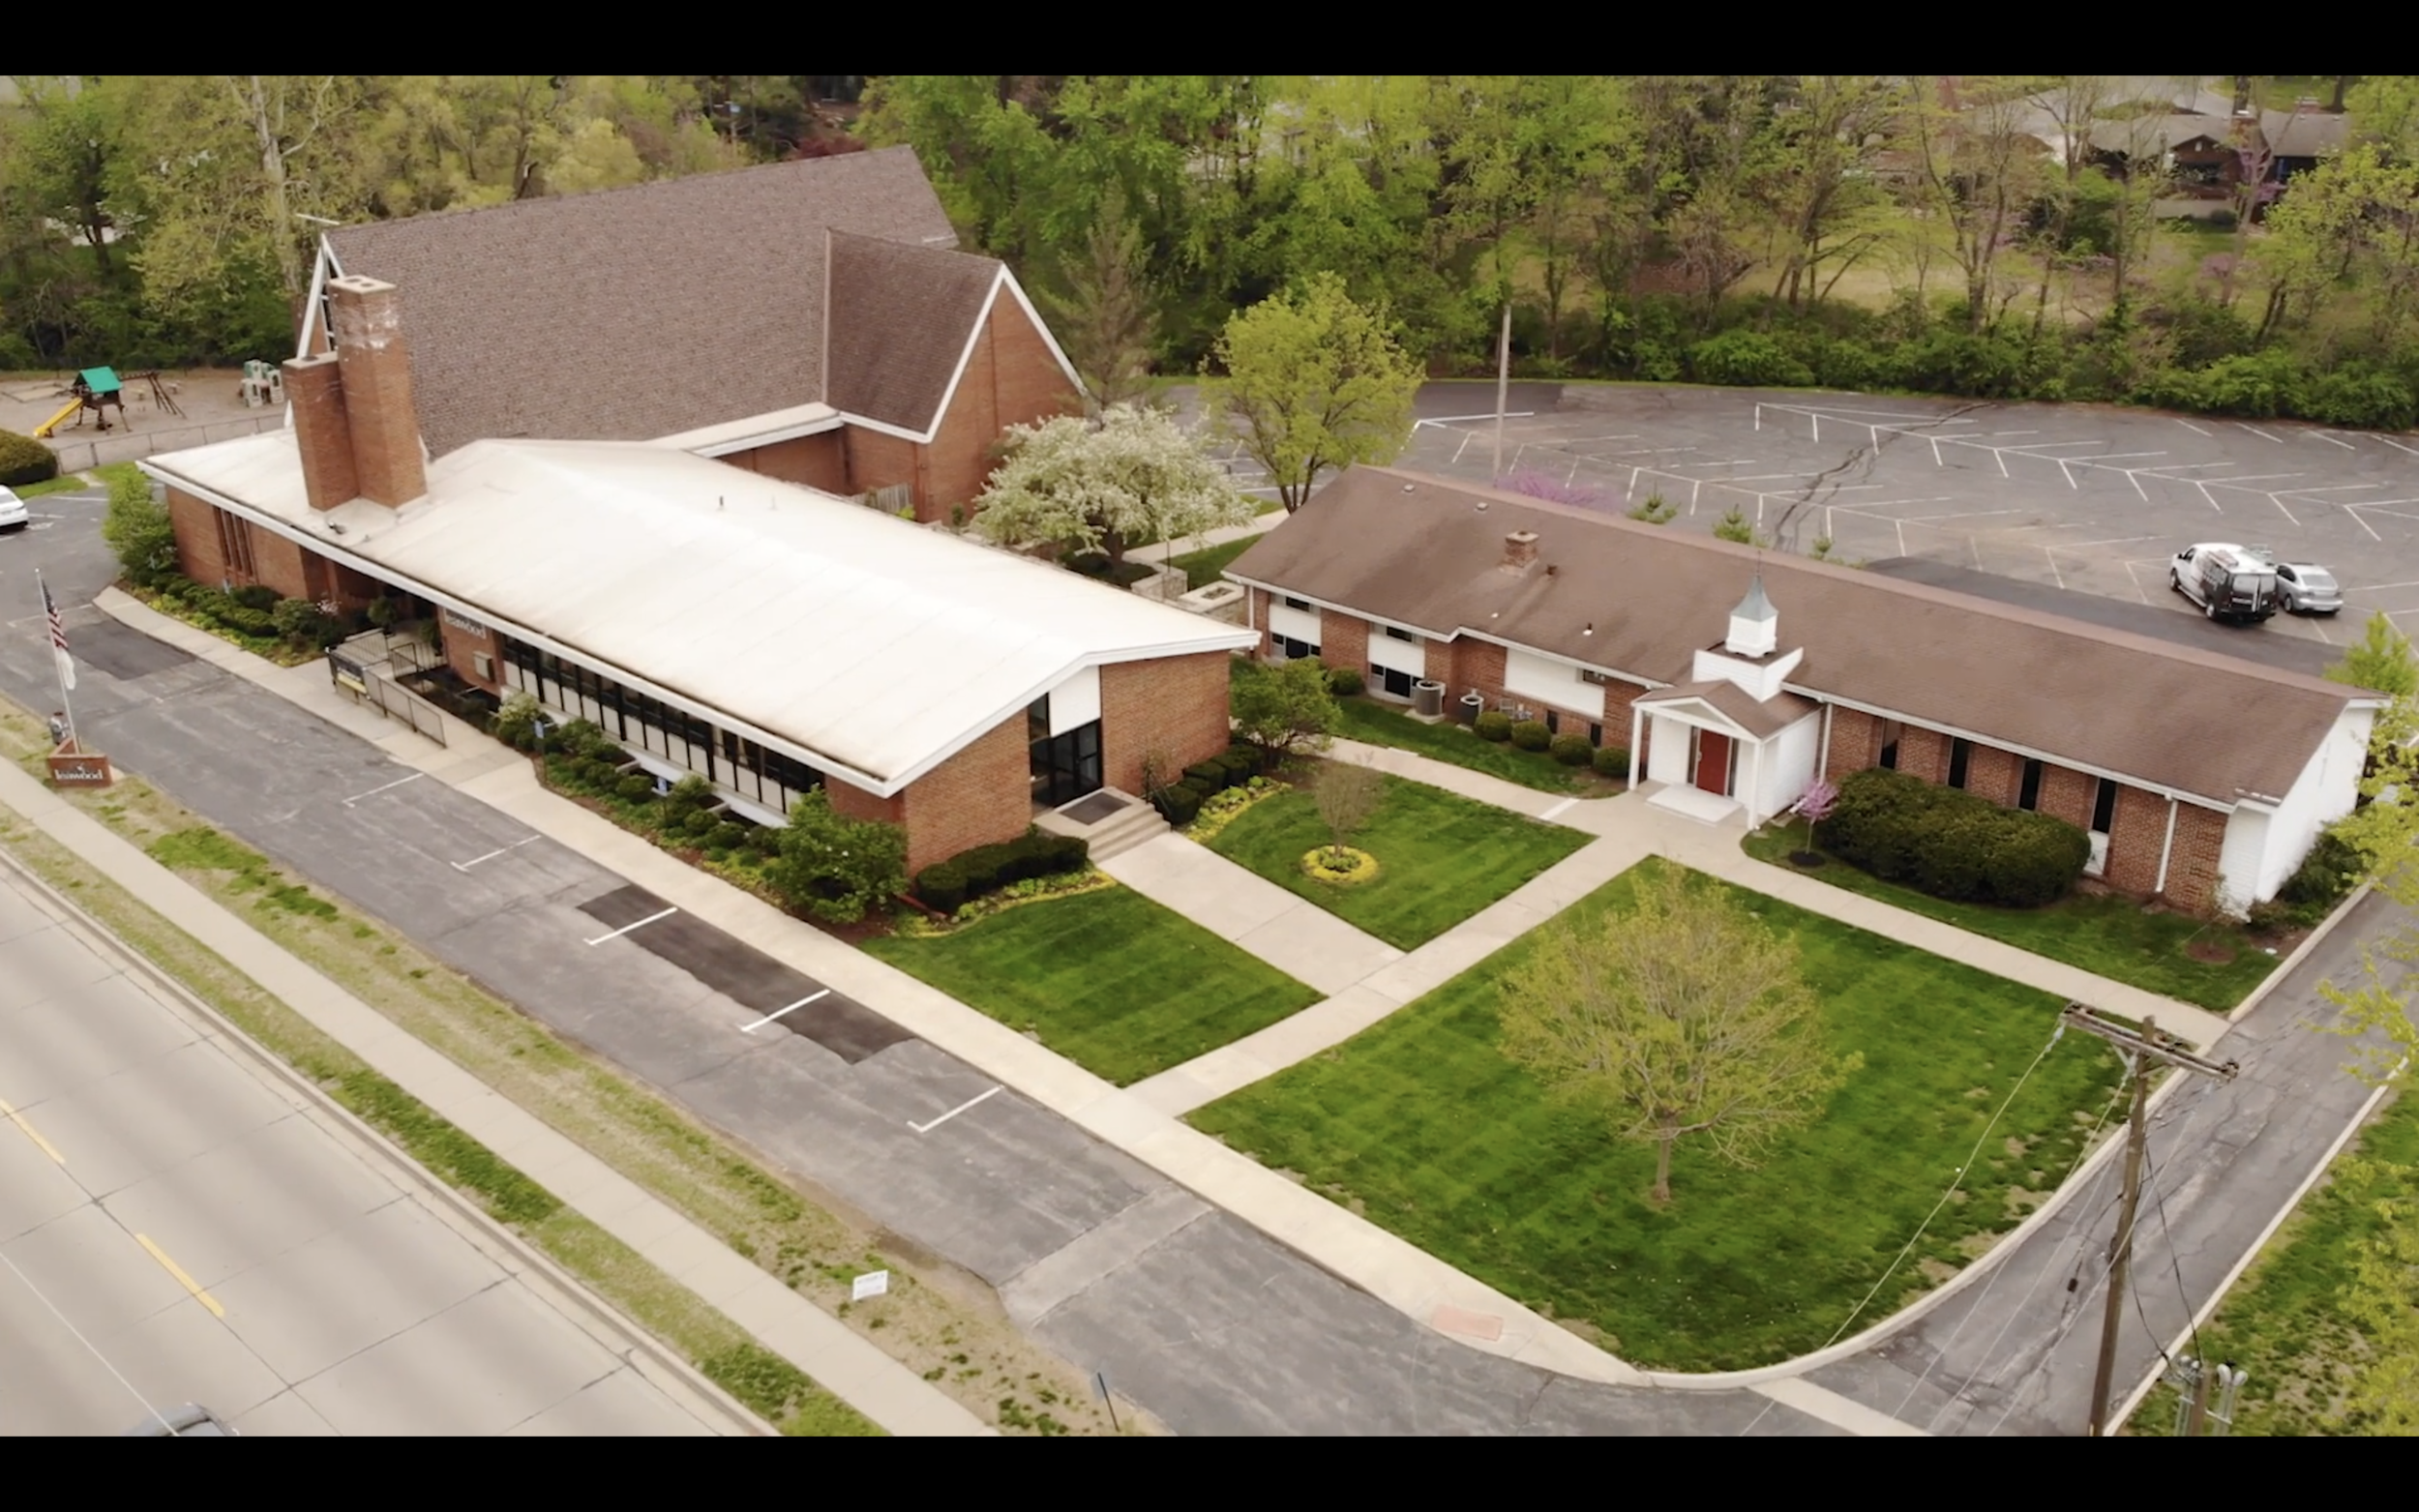 drone shot of church property.png